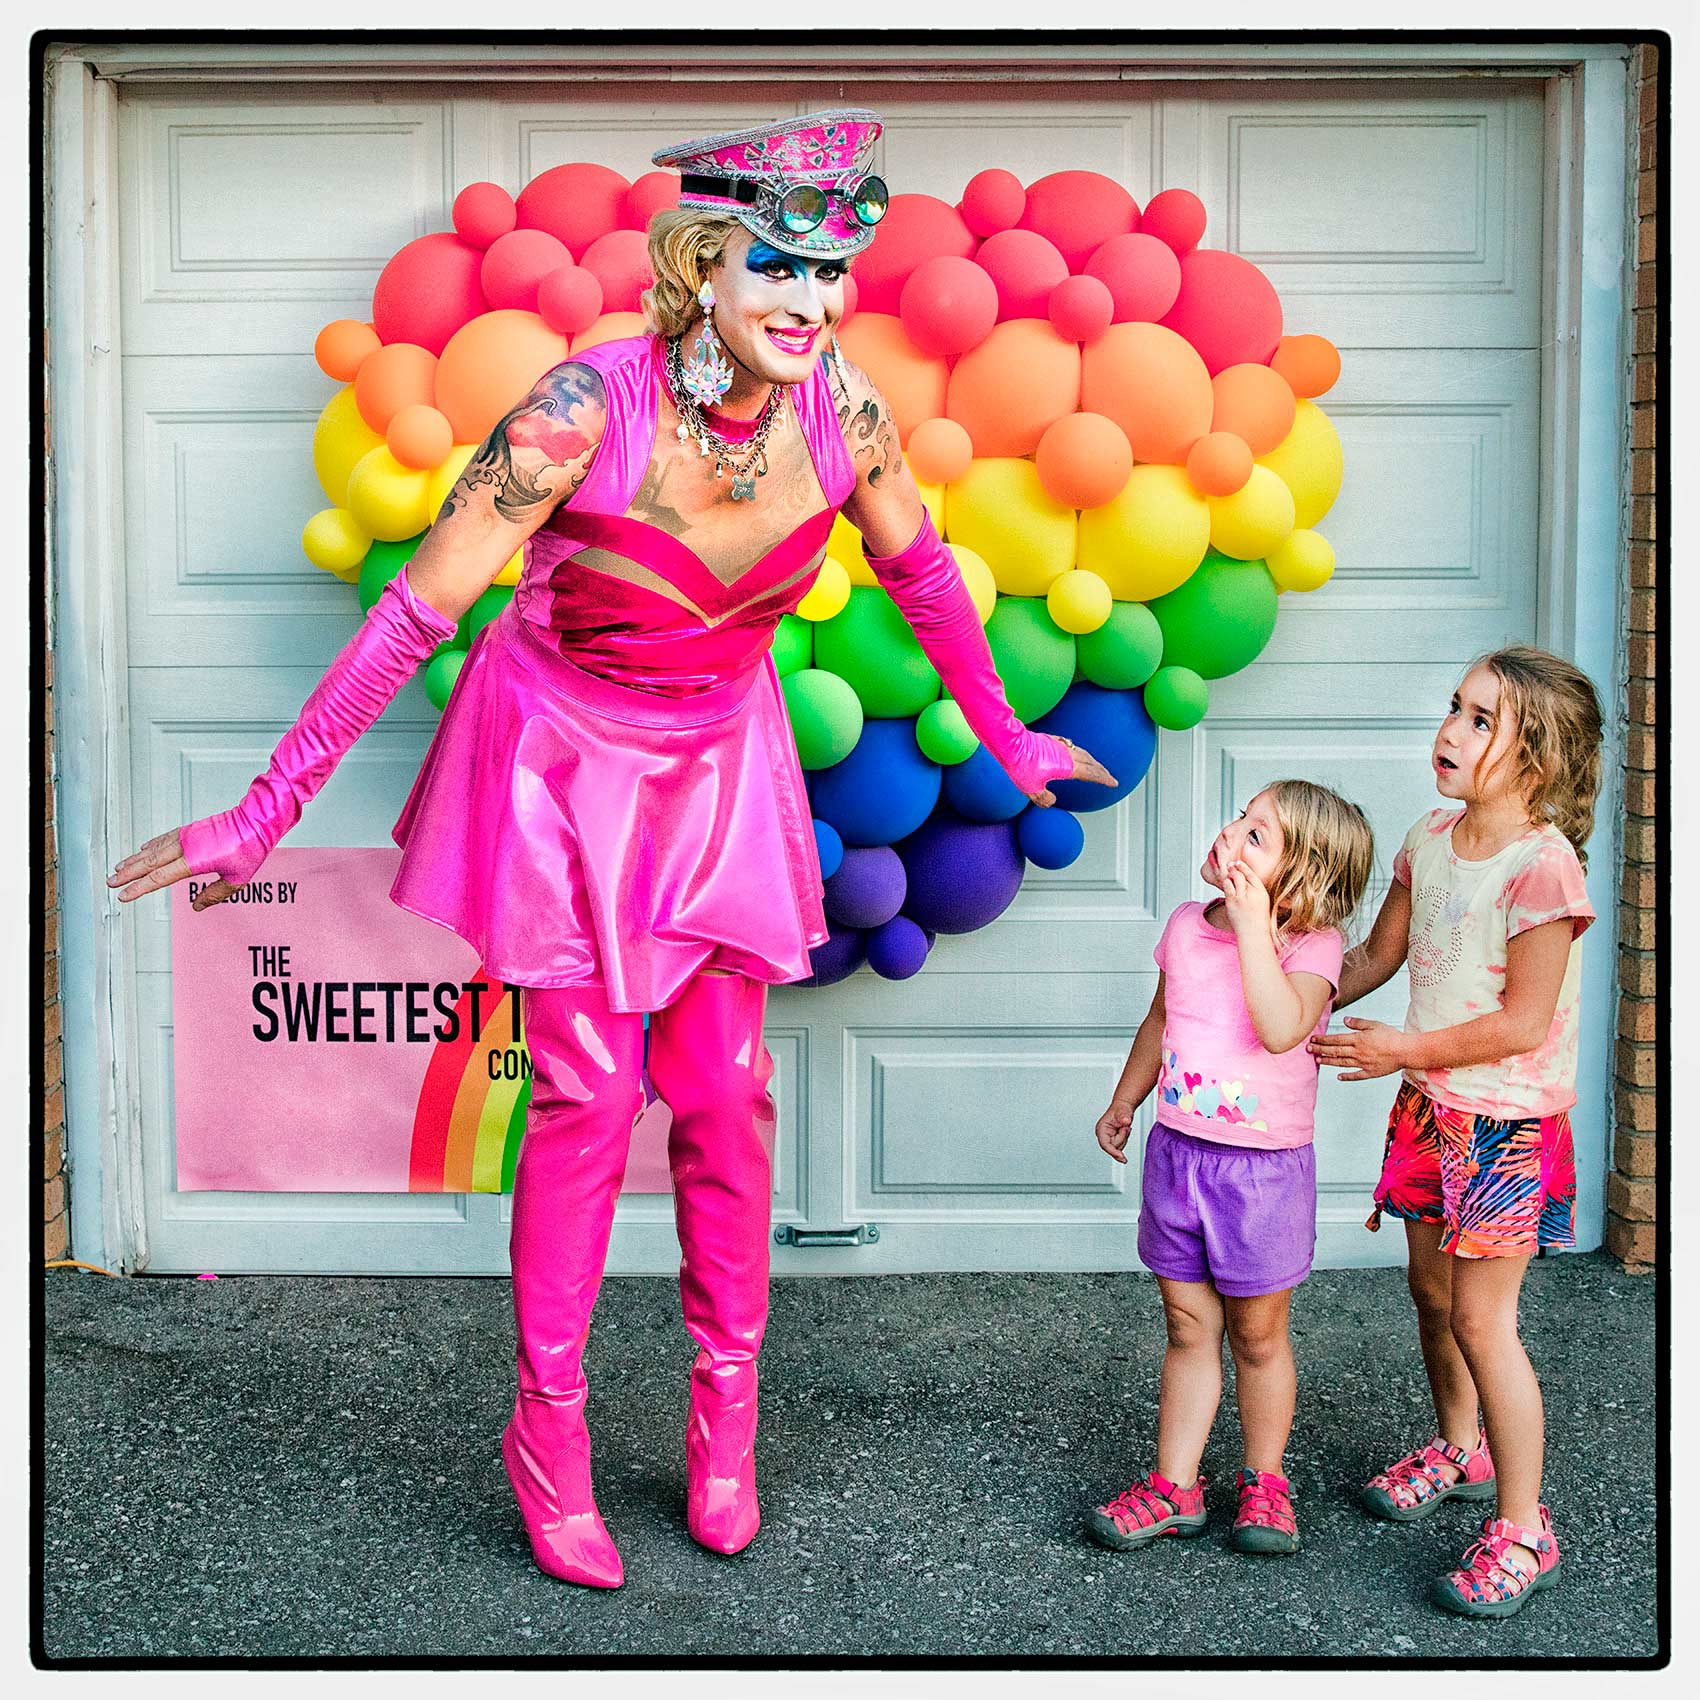 A drag queen looks surprised as she poses with suburban children after a toronto show